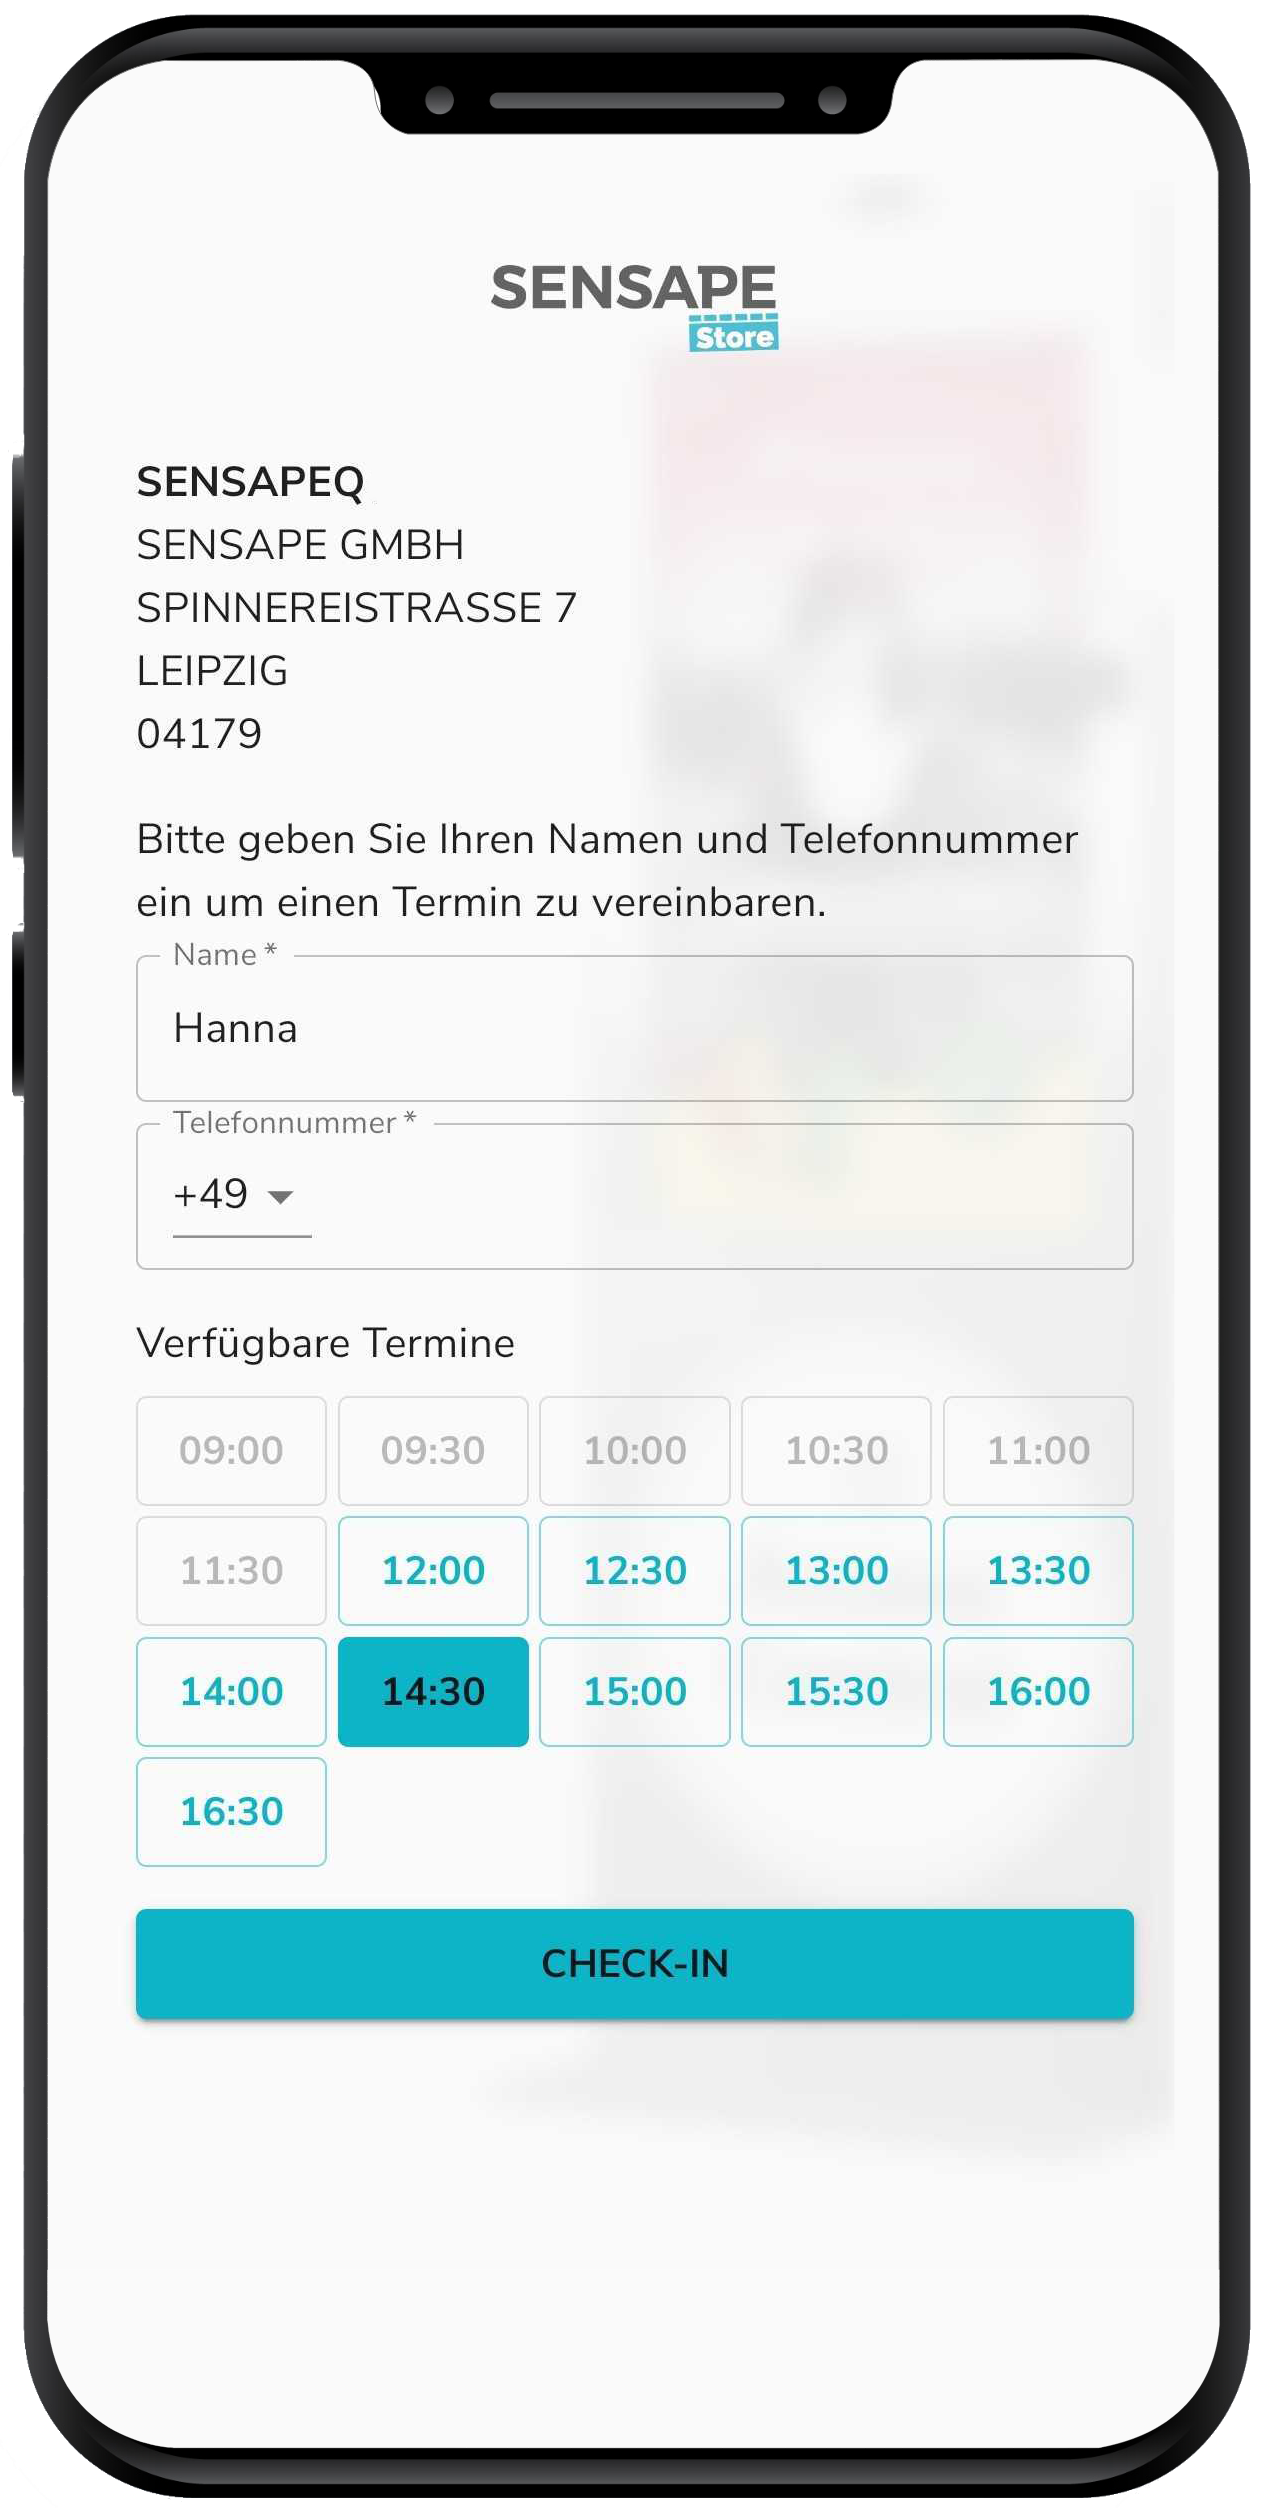 Smartphone shows the appointment booking process for a virtual queuing system.